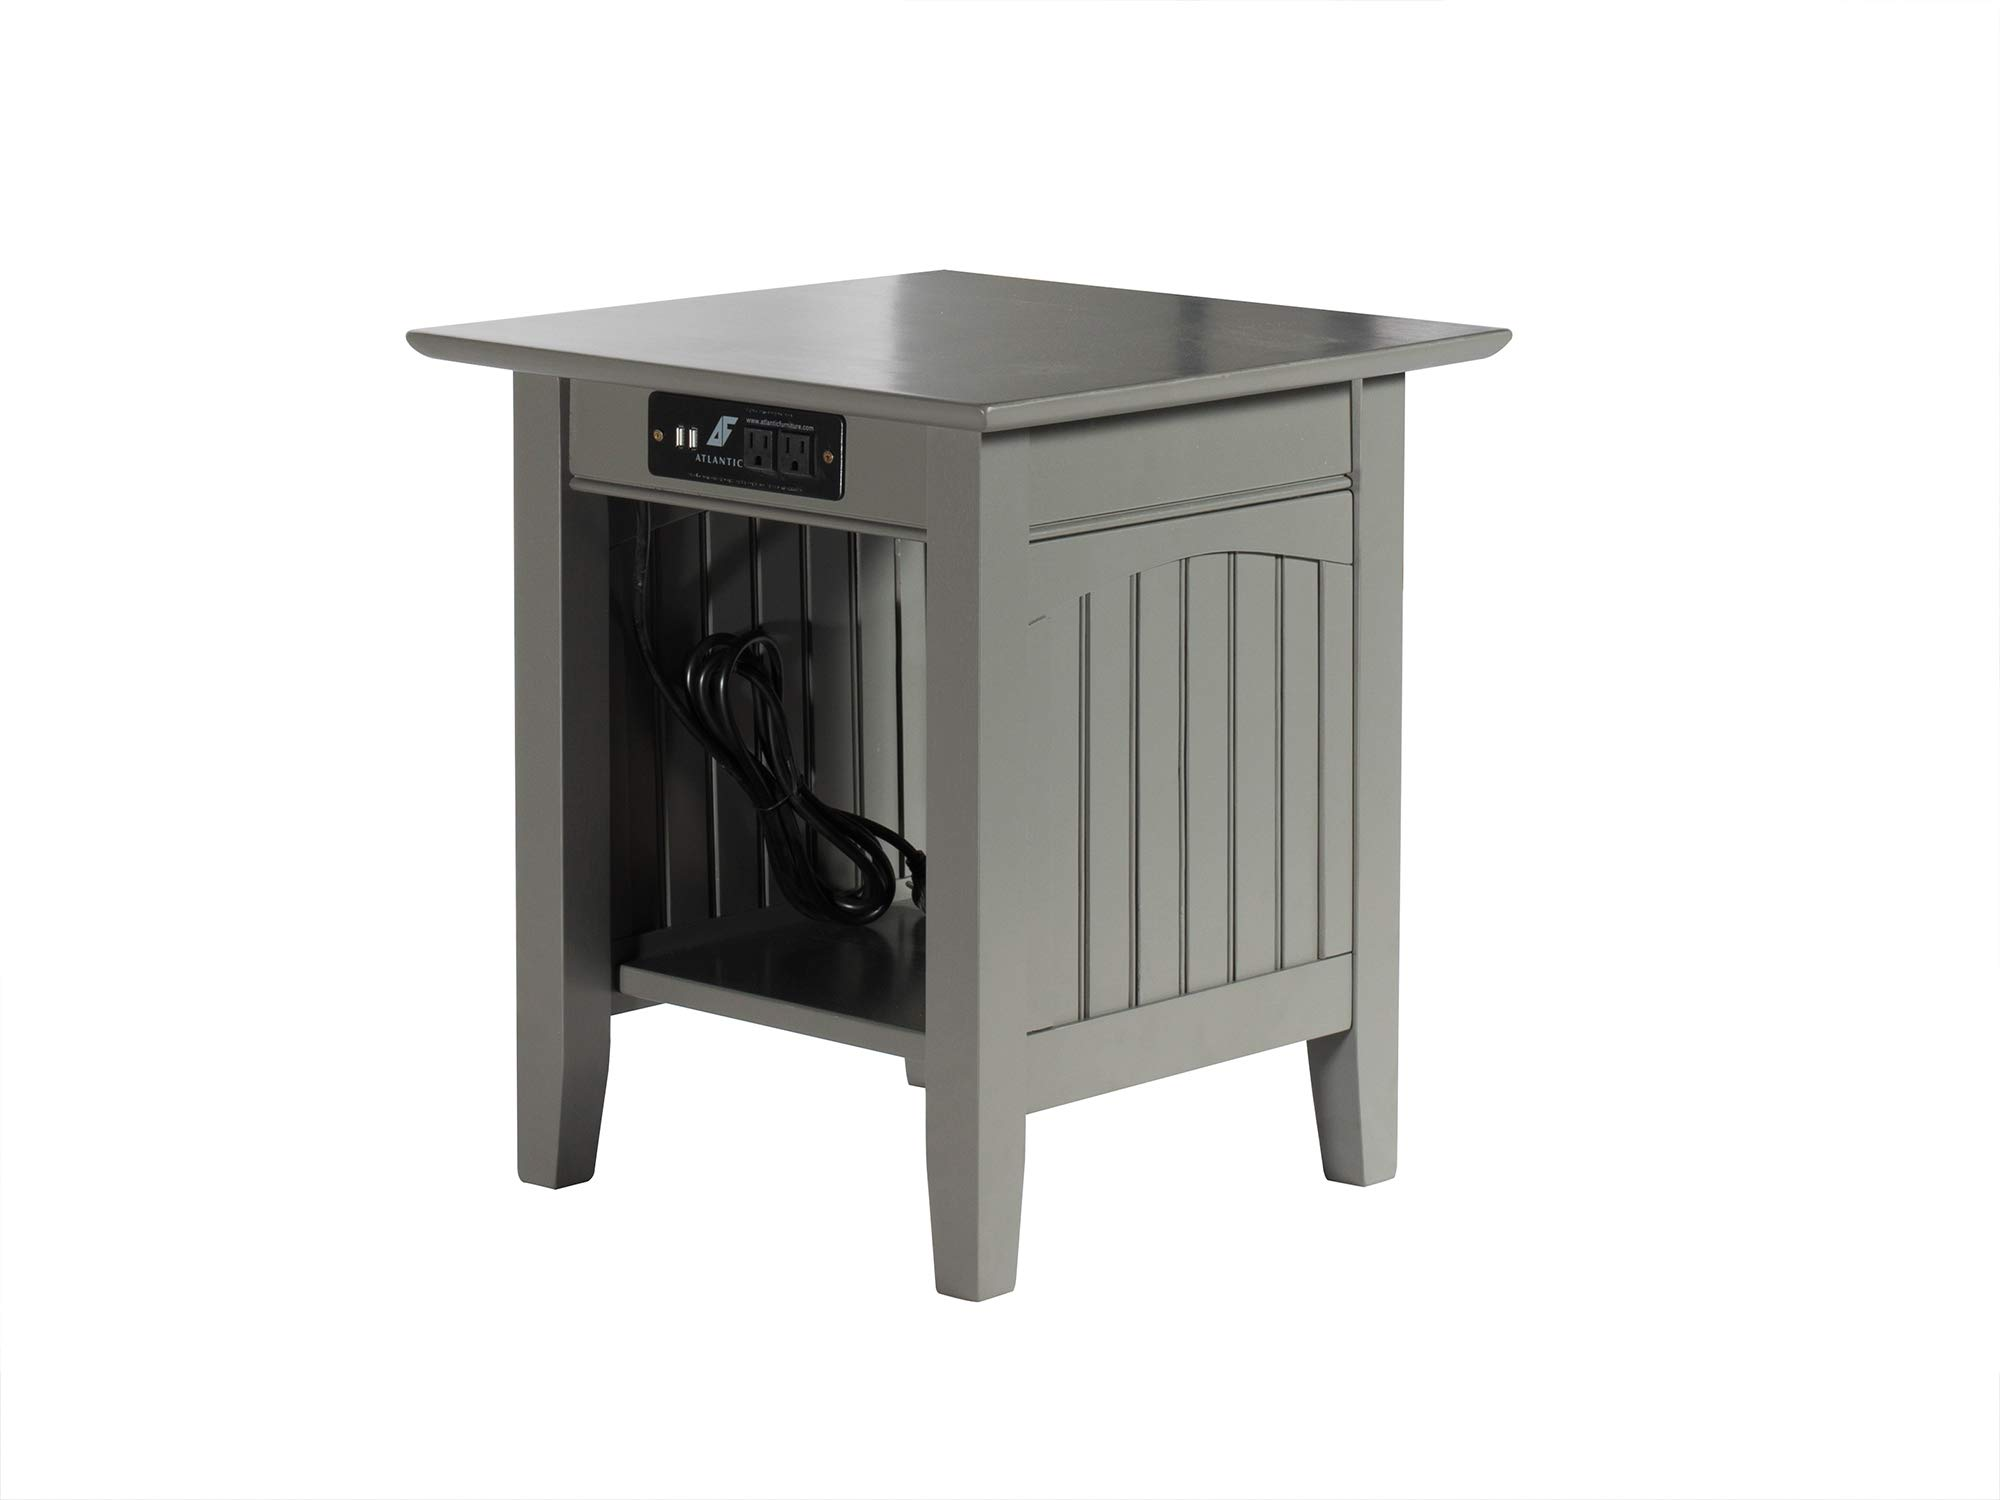 Atlantic Furniture AH14319 Nantucket End Table with Charging Station, Grey